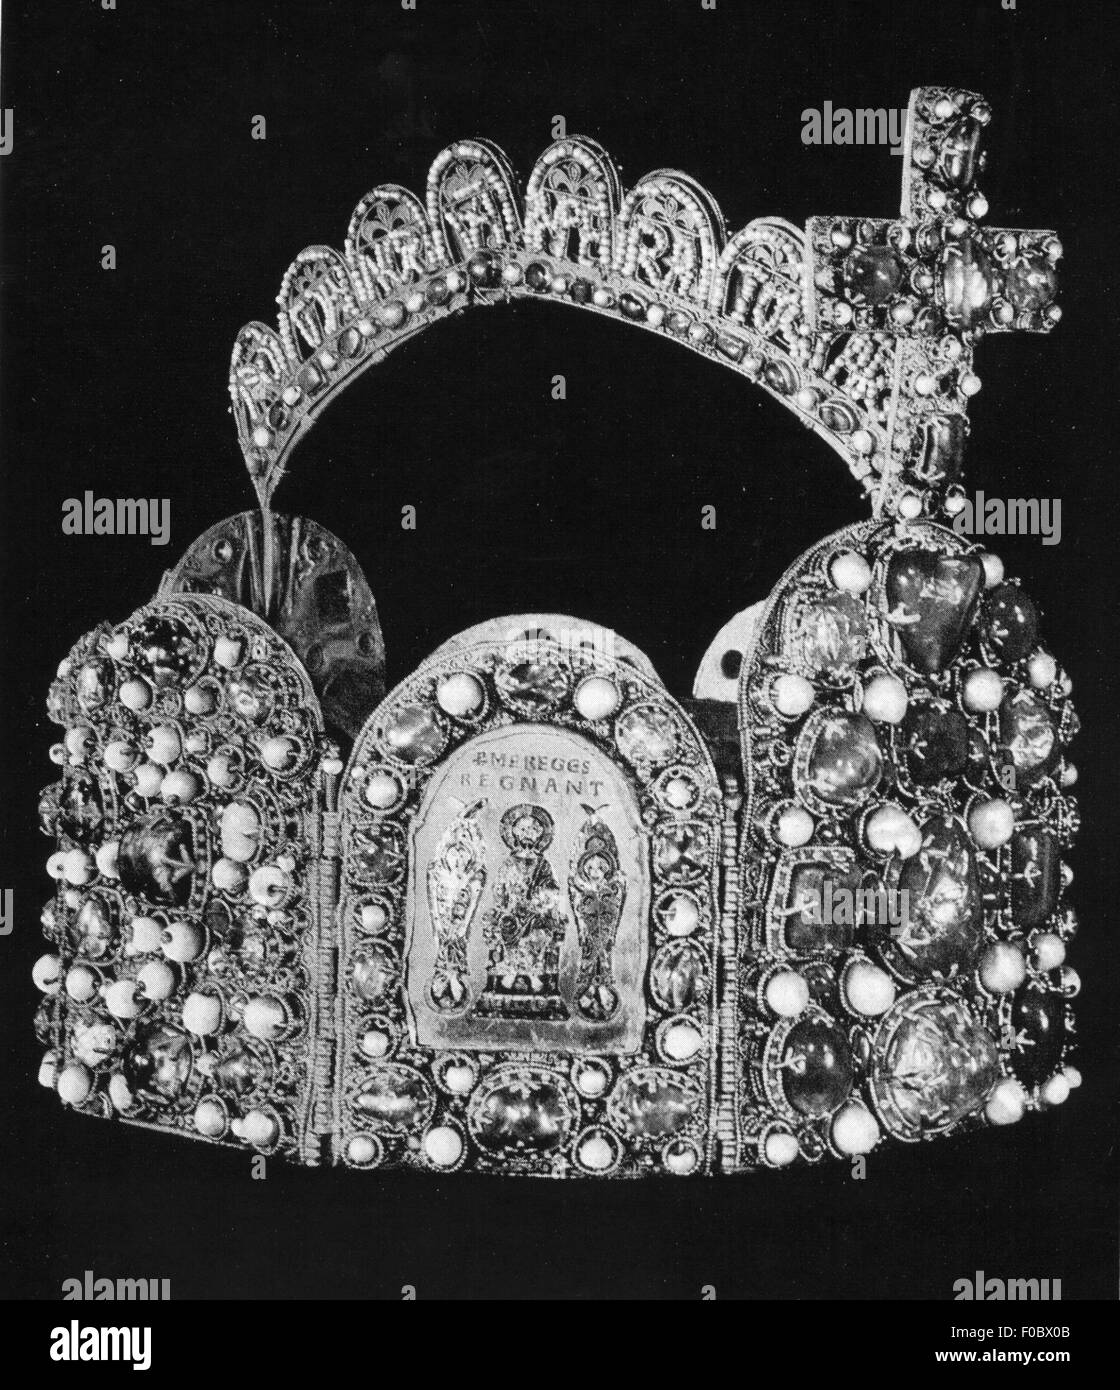 crowns / crown jewels, Holy Roman Empire, imperial crown of the kings and emperors, second half 10th century, chromolithograph, - Stock Image